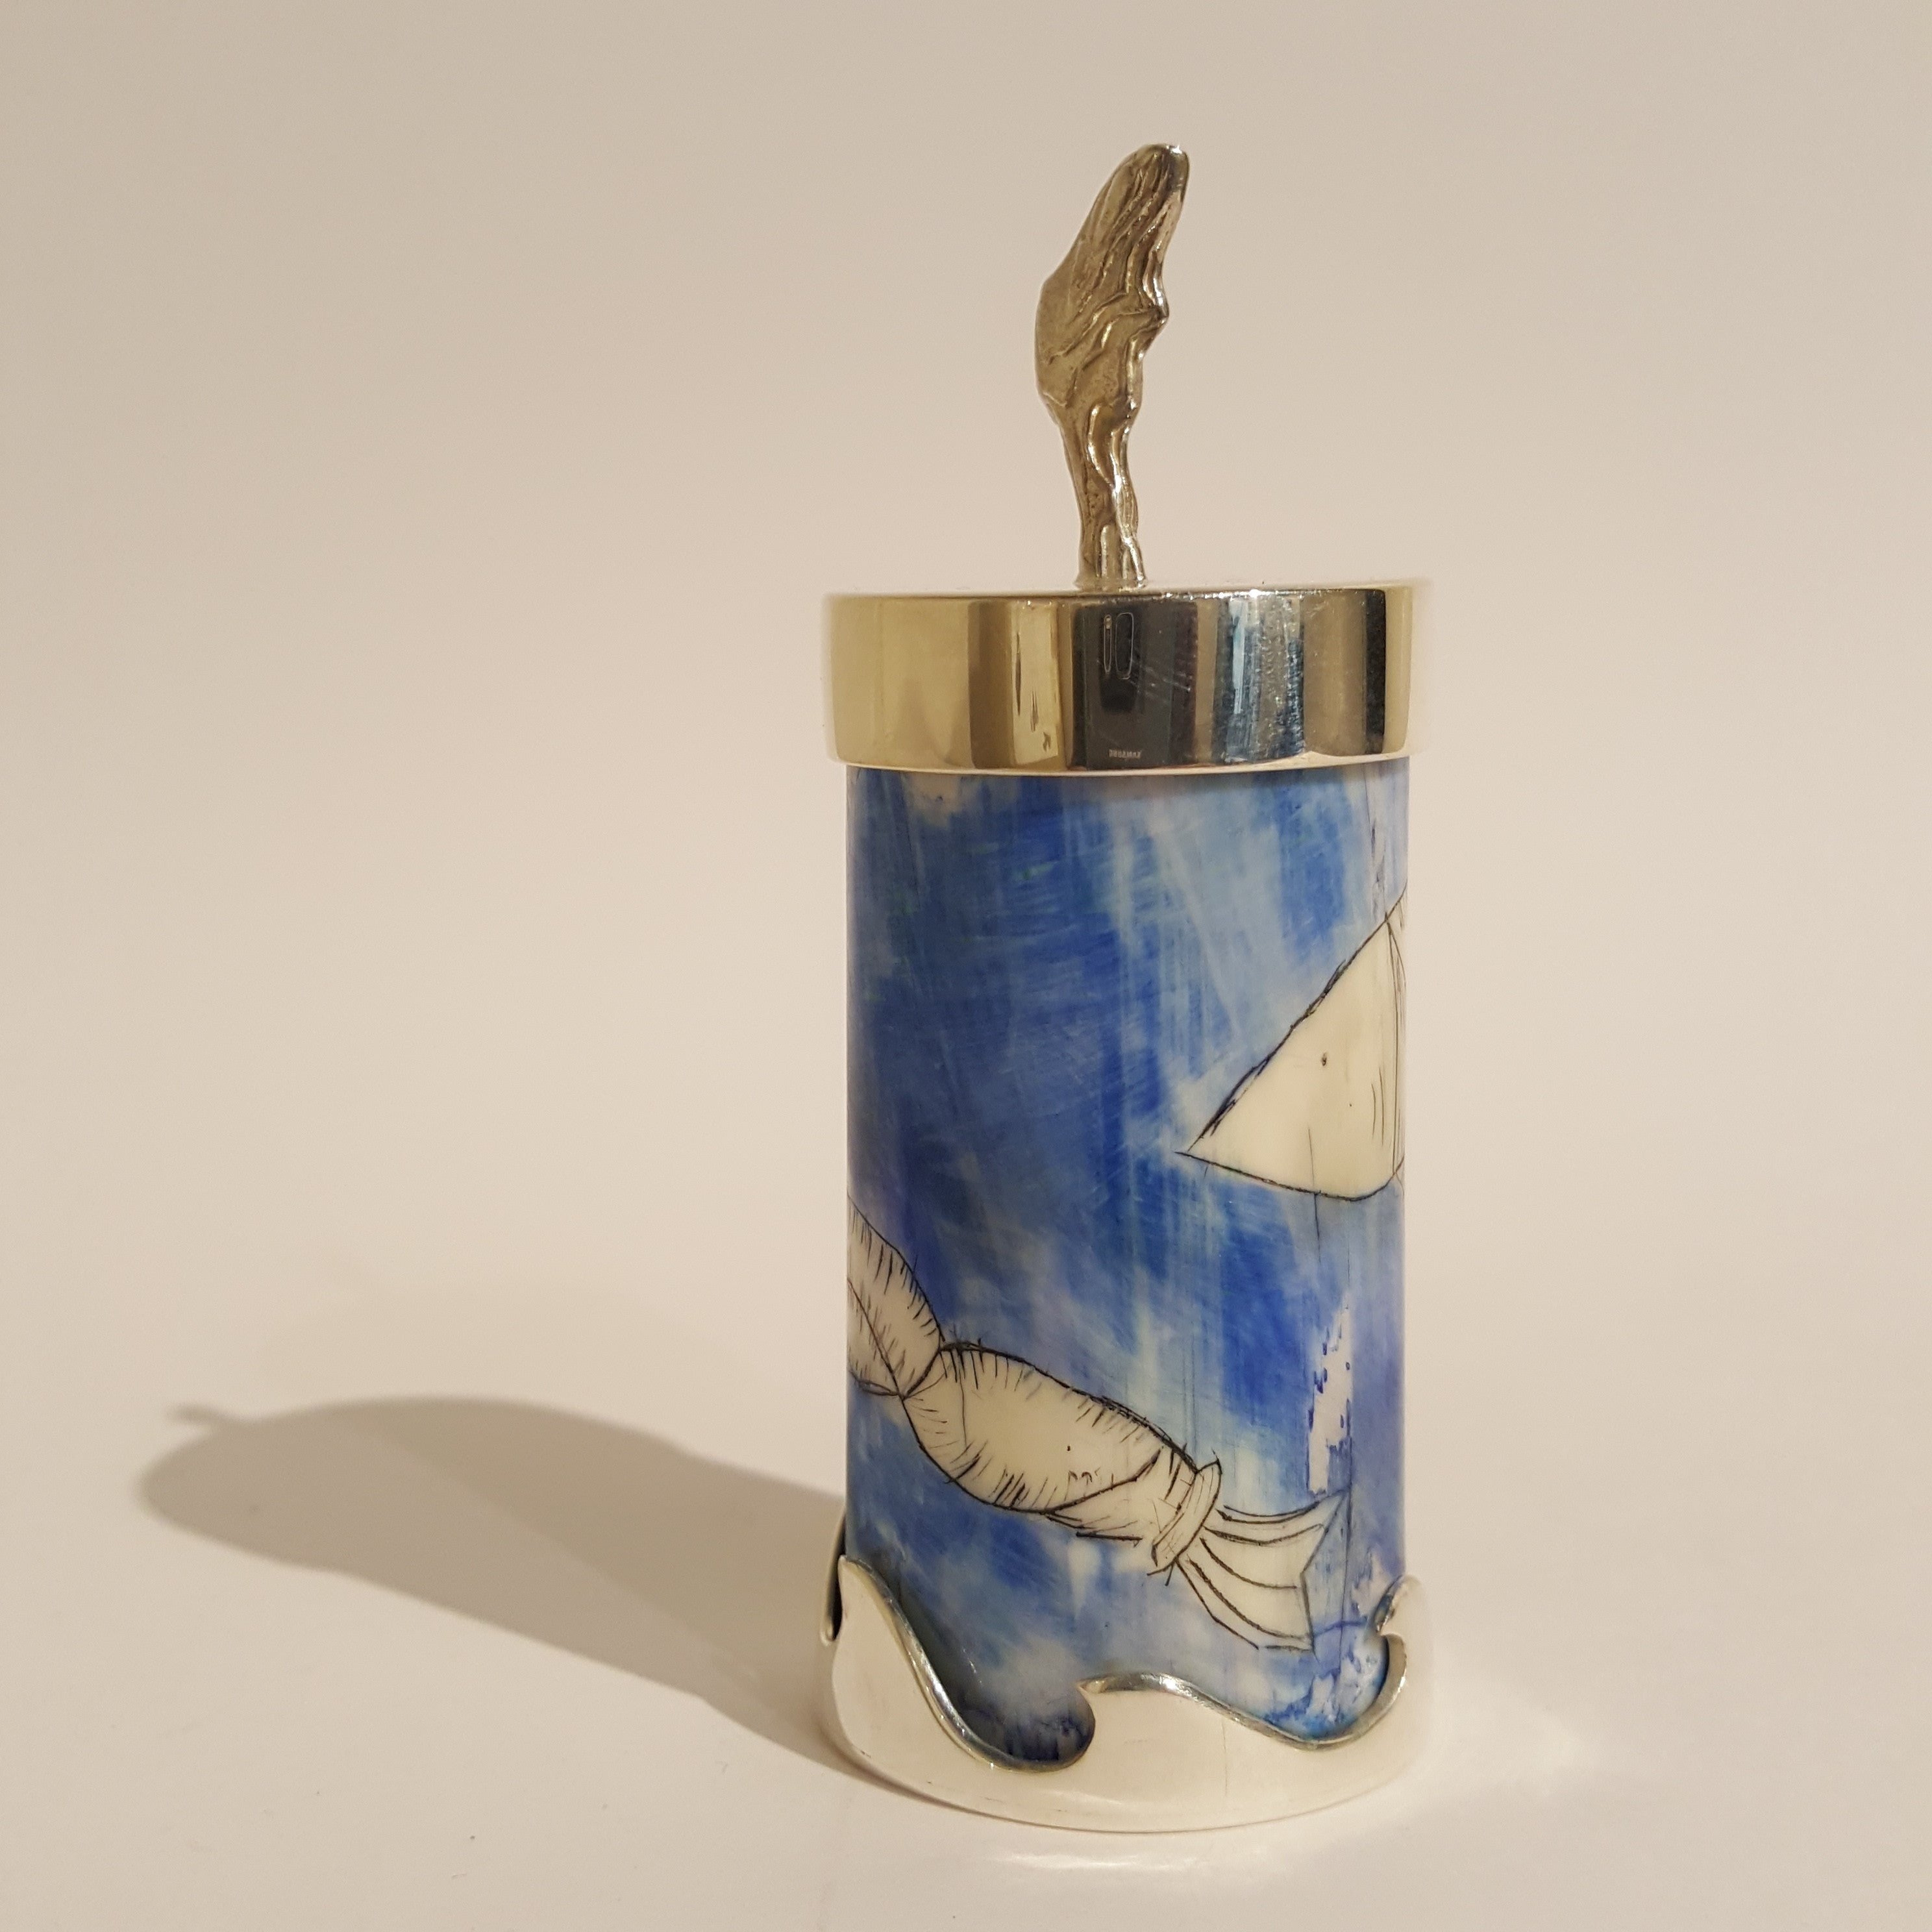 Fishtail container in walrus tusk ivory, and sterling silver by Anne Qammaniq-Hellwig.